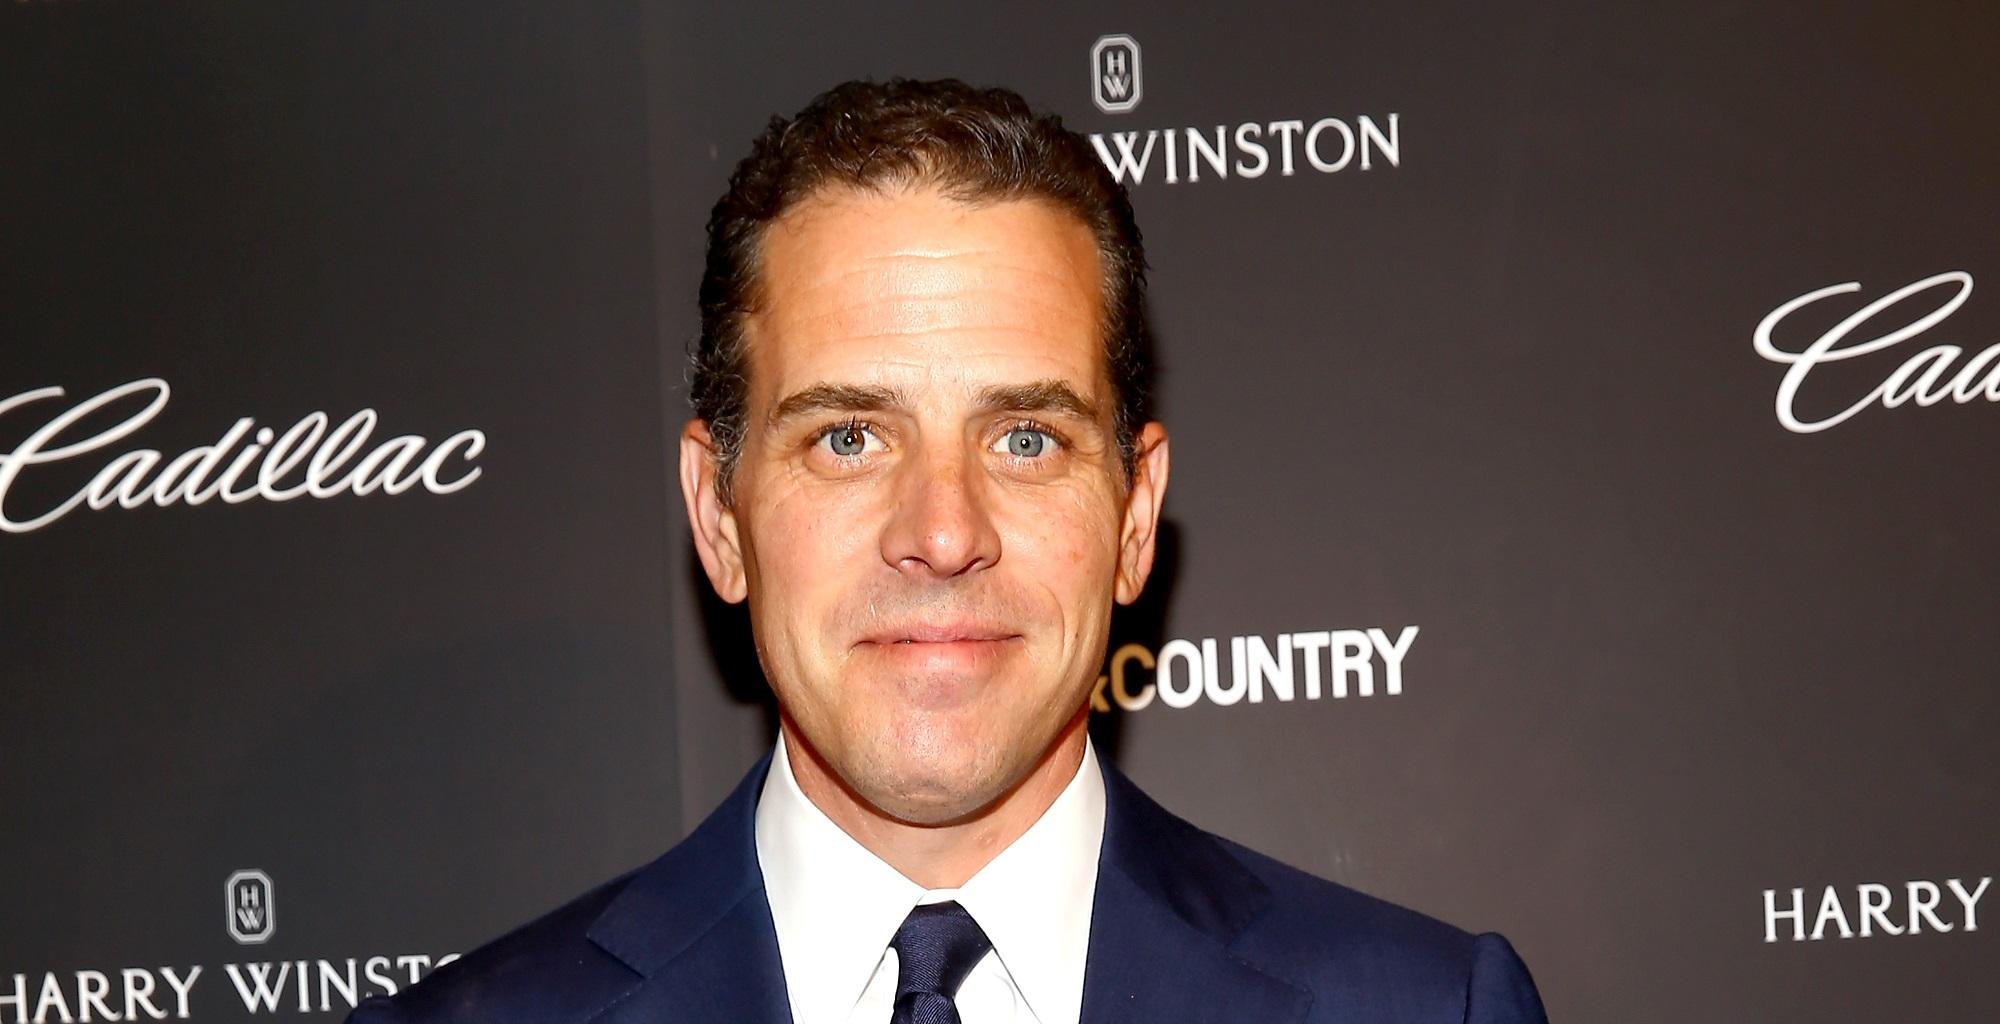 Hunter Biden Gets Some Support After DNA Drama